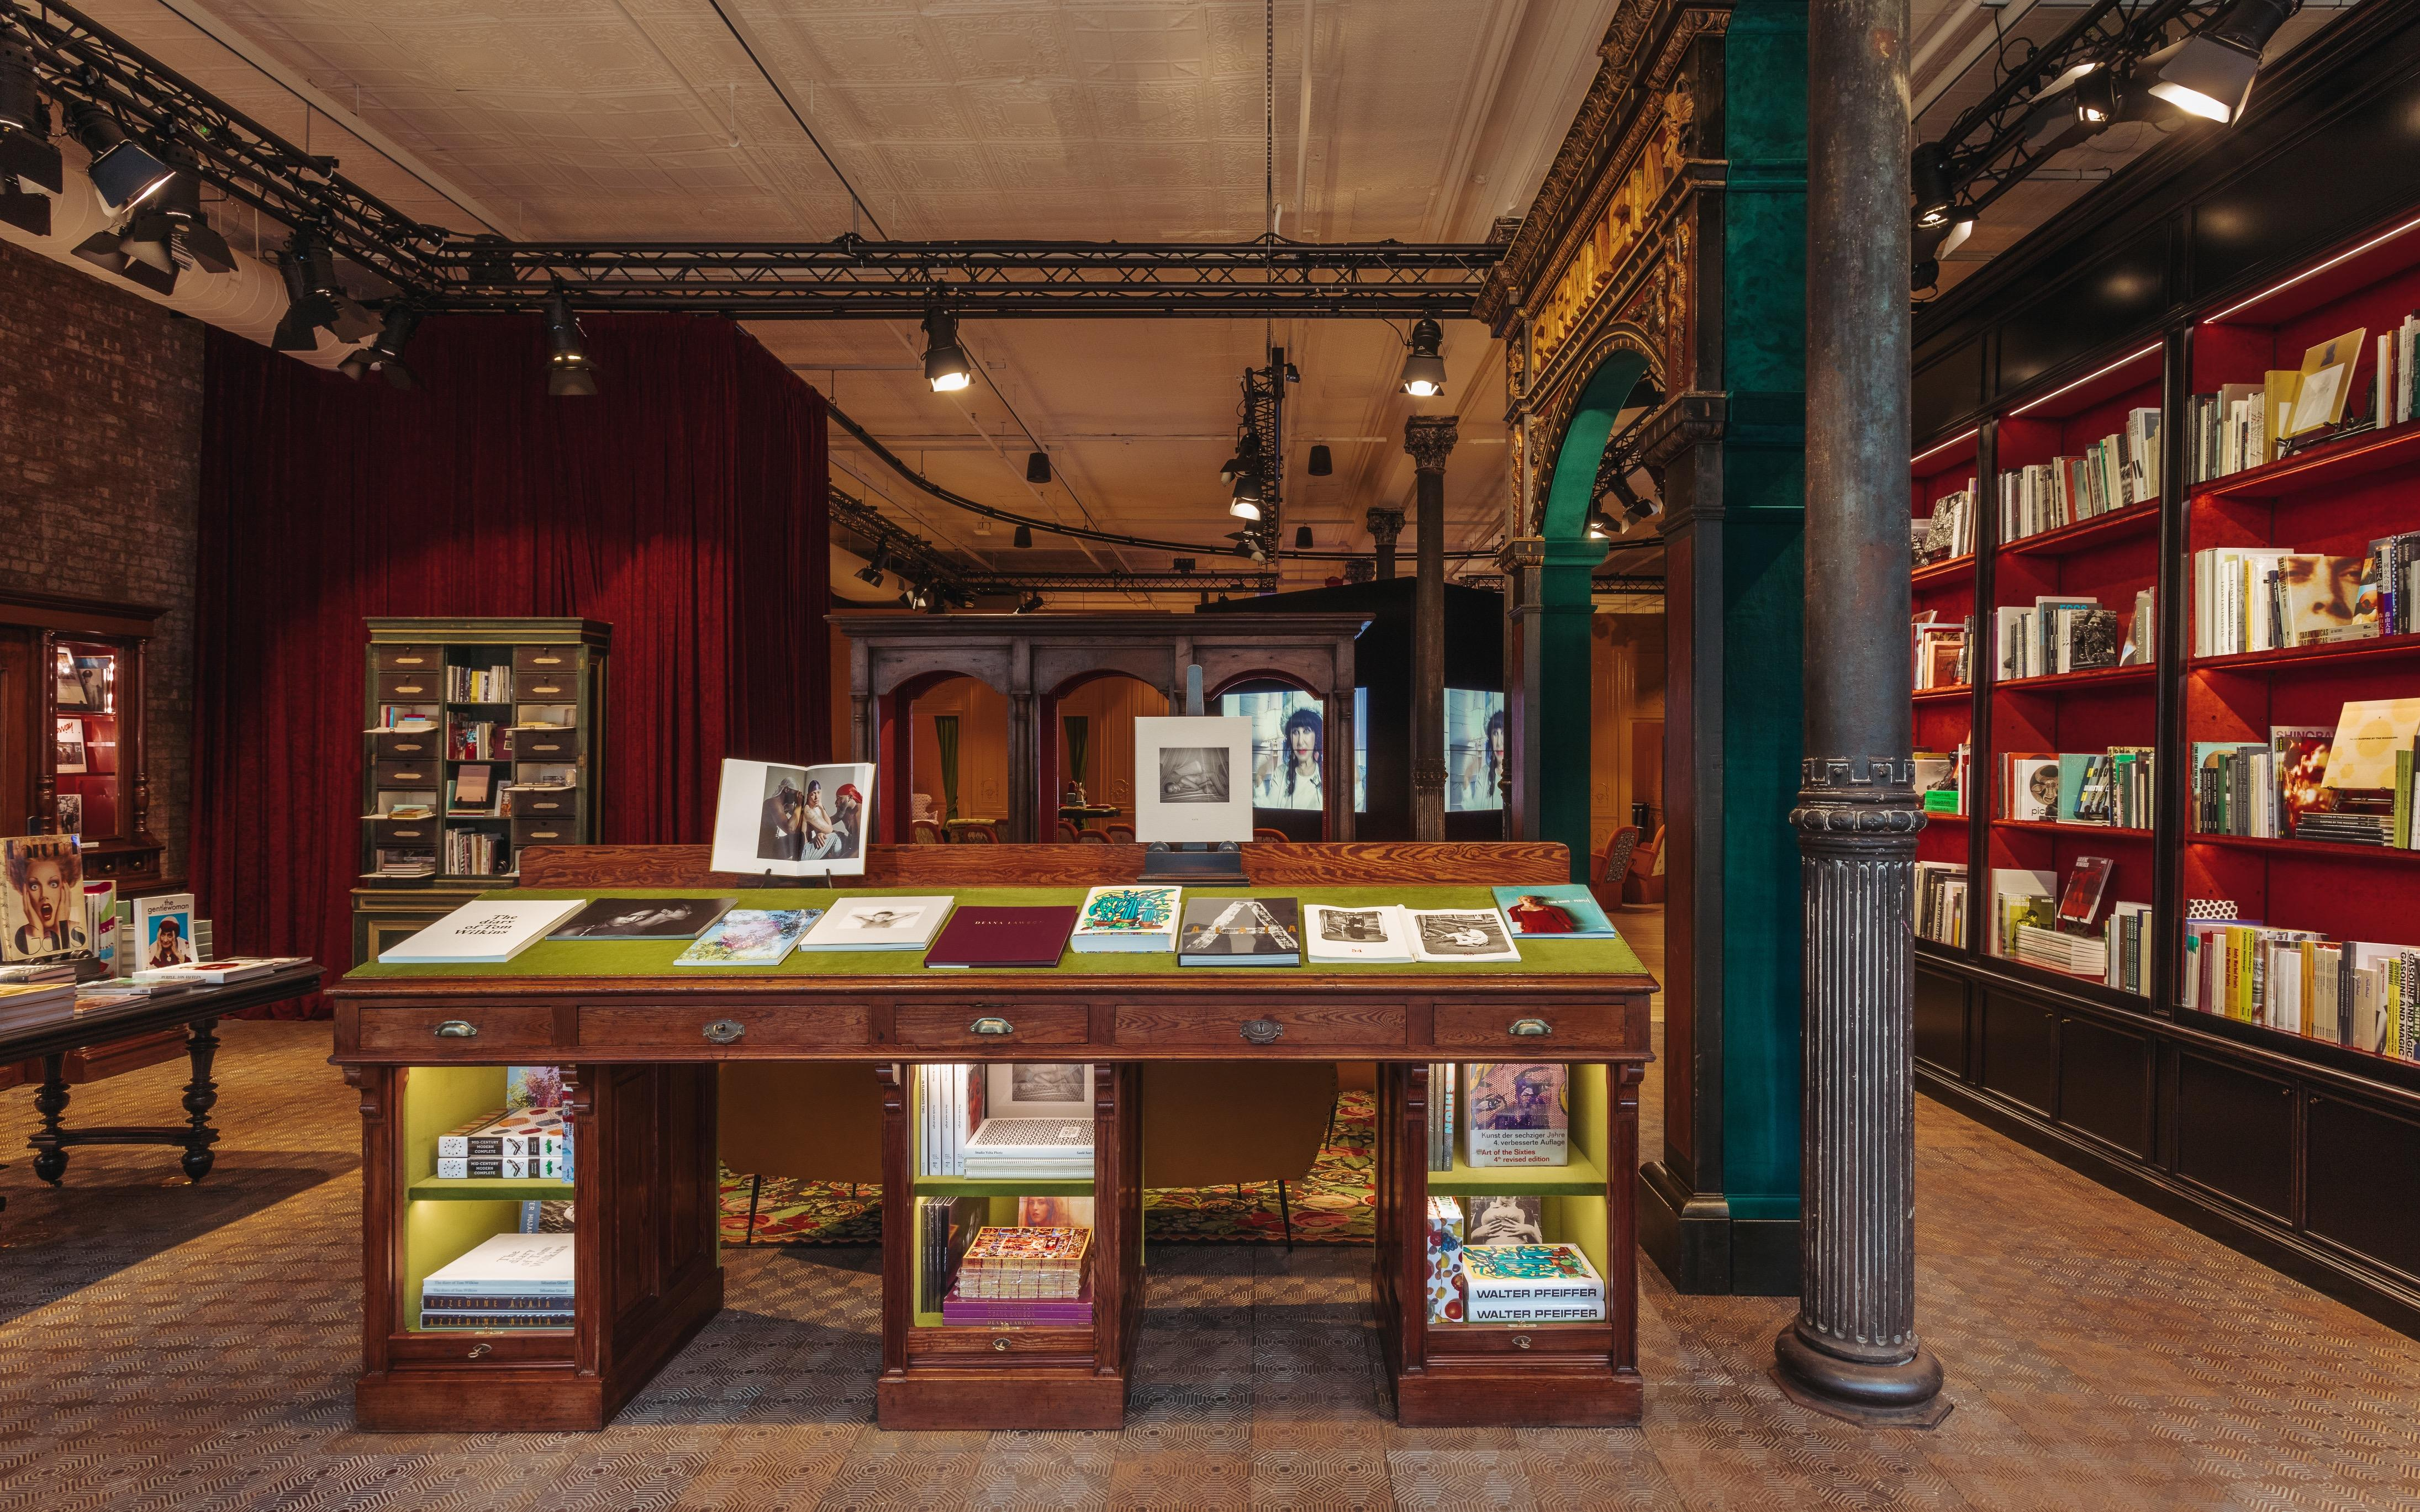 Gucci Wooster Bookstore image 4